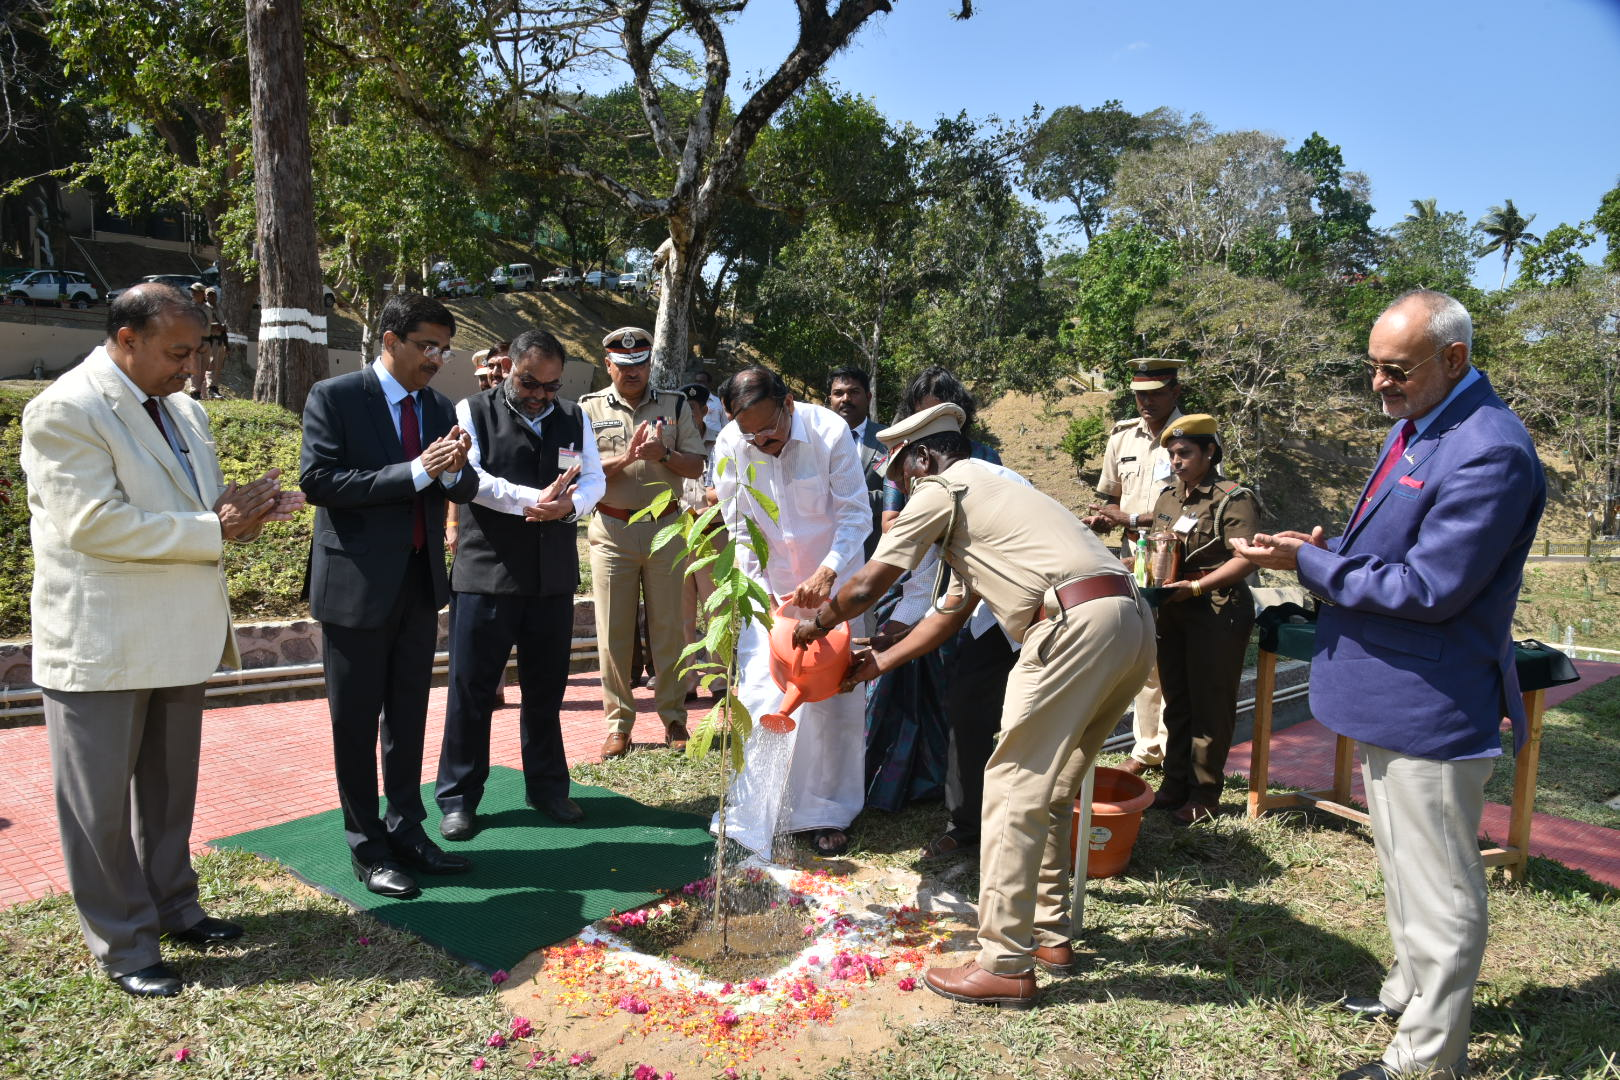 The Vice President, Shri M. Venkaiah Naidu planting a sapling at the Nature Park and Interpretation Centre in Haddo, Port Blair, Andaman and Nicobar on January 17, 2020.